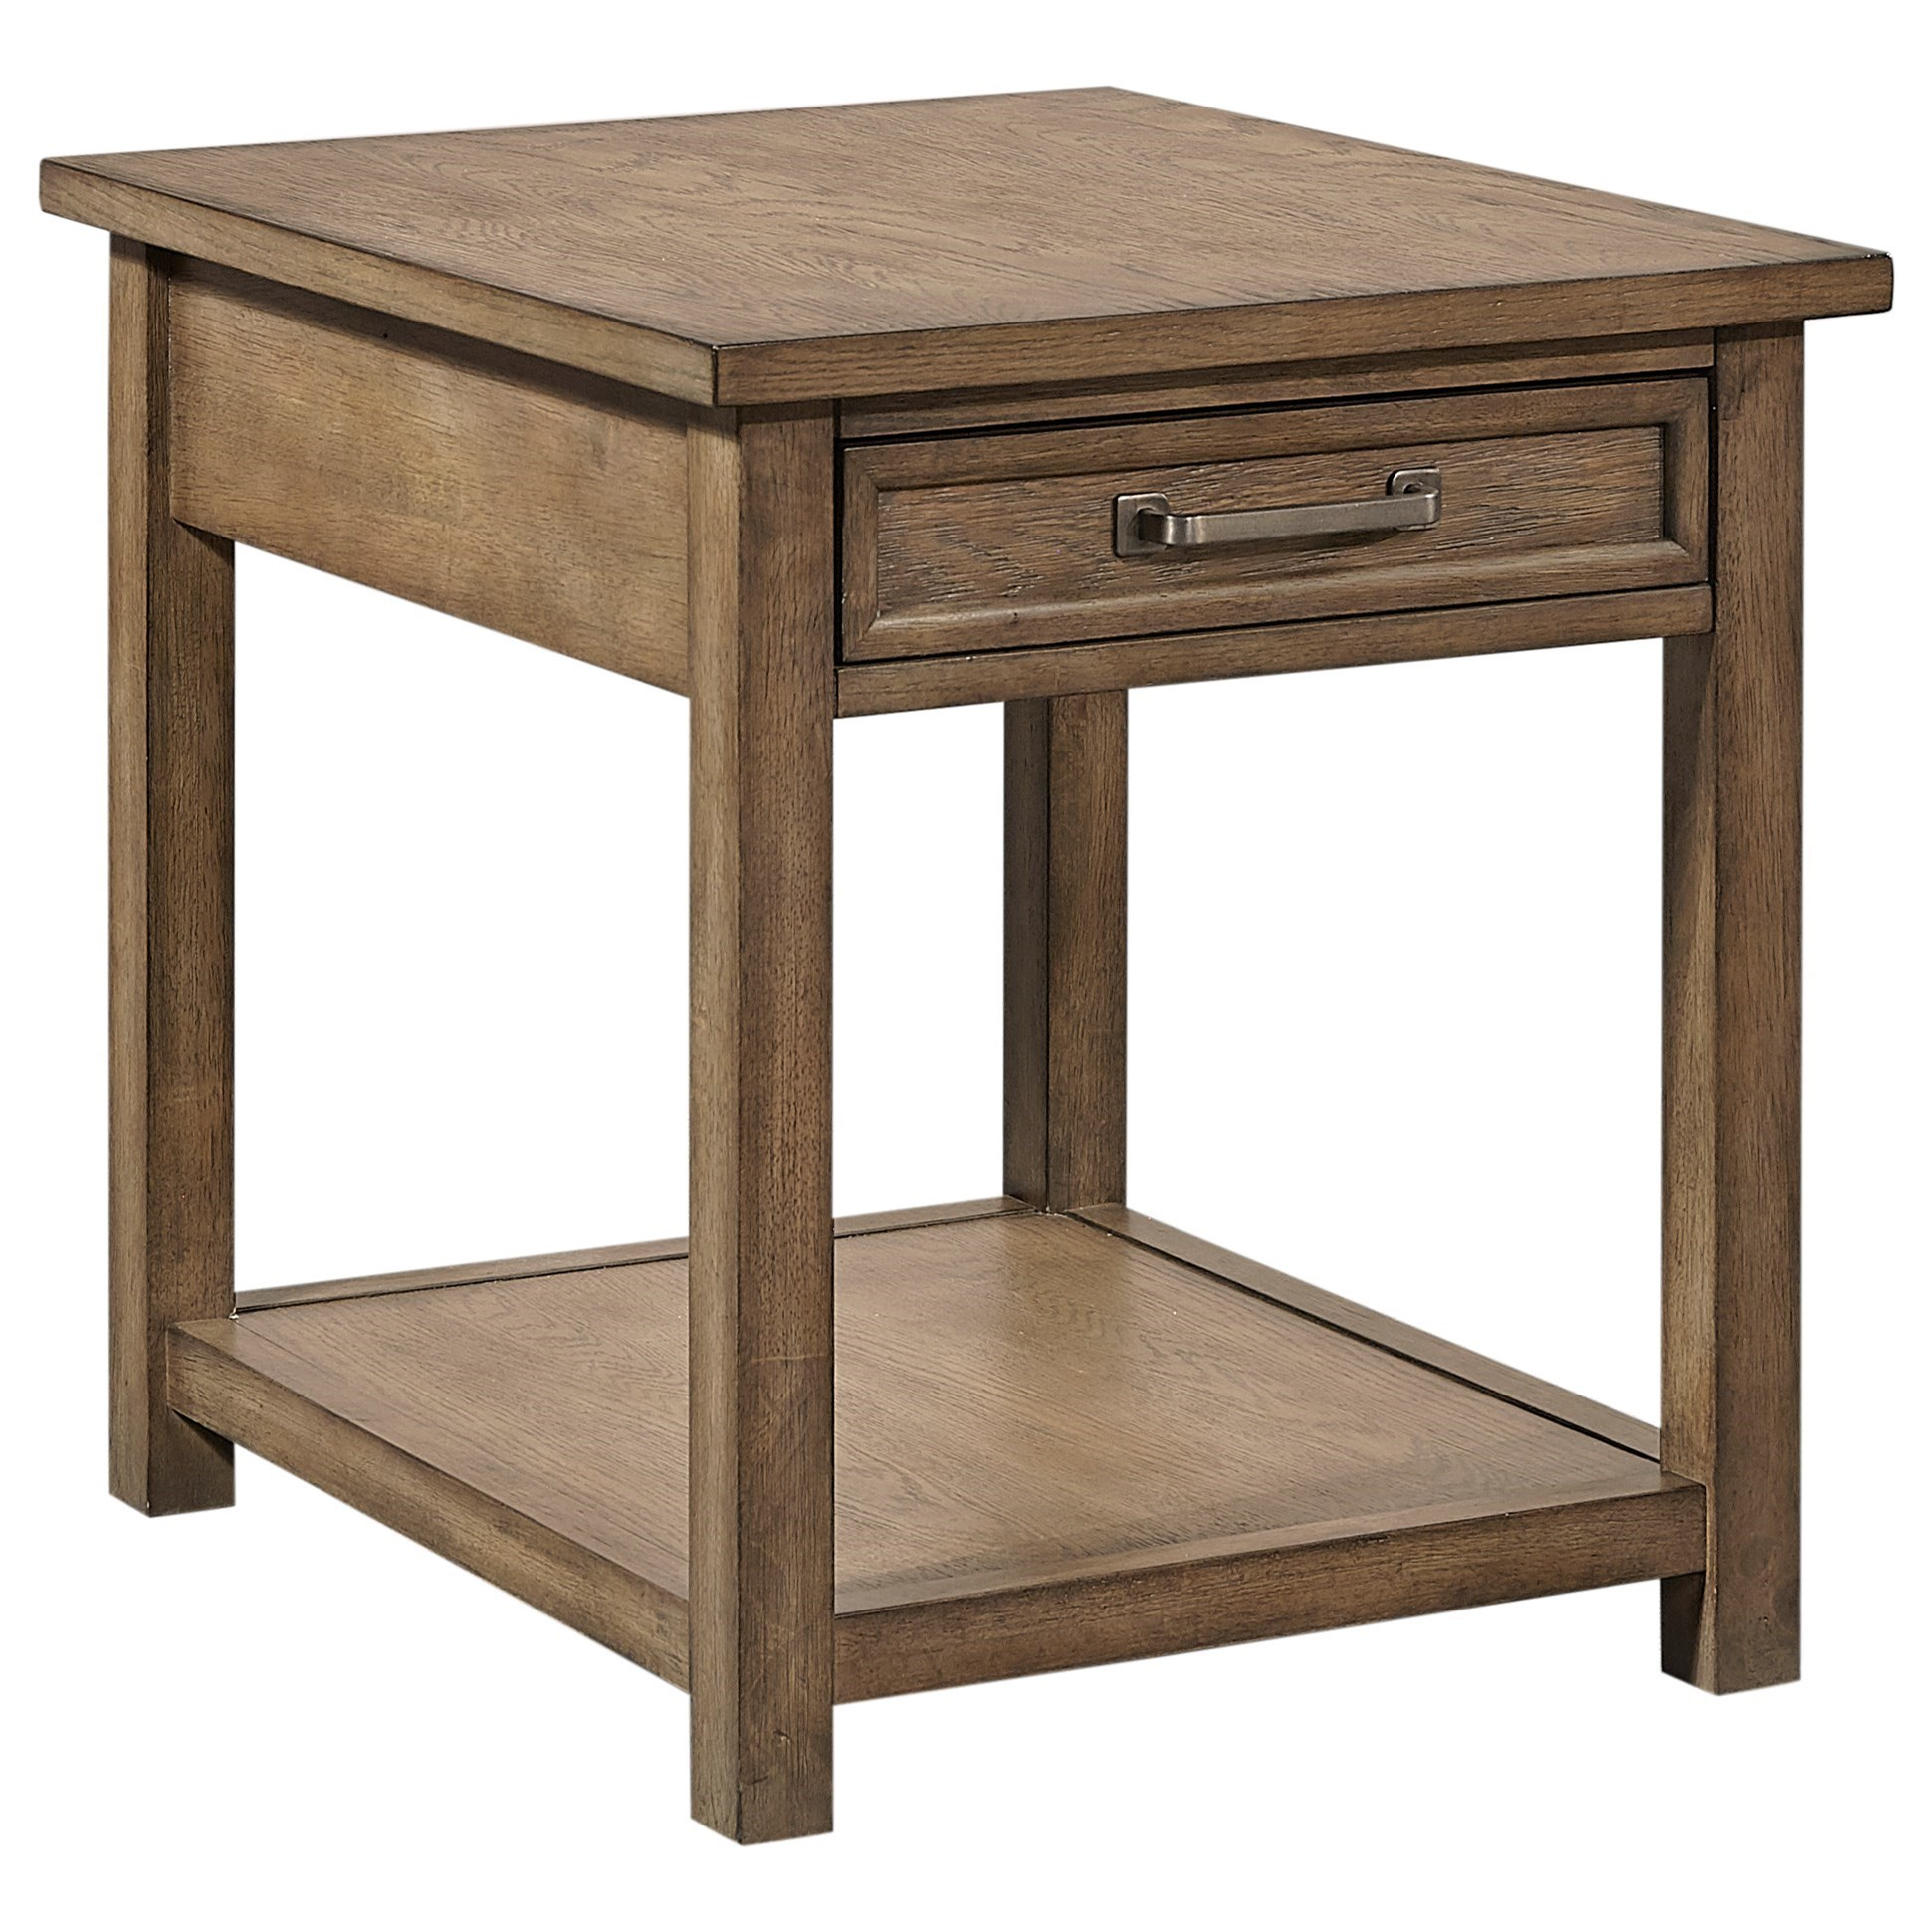 Terrace Point End Table by Aspenhome at Baer's Furniture